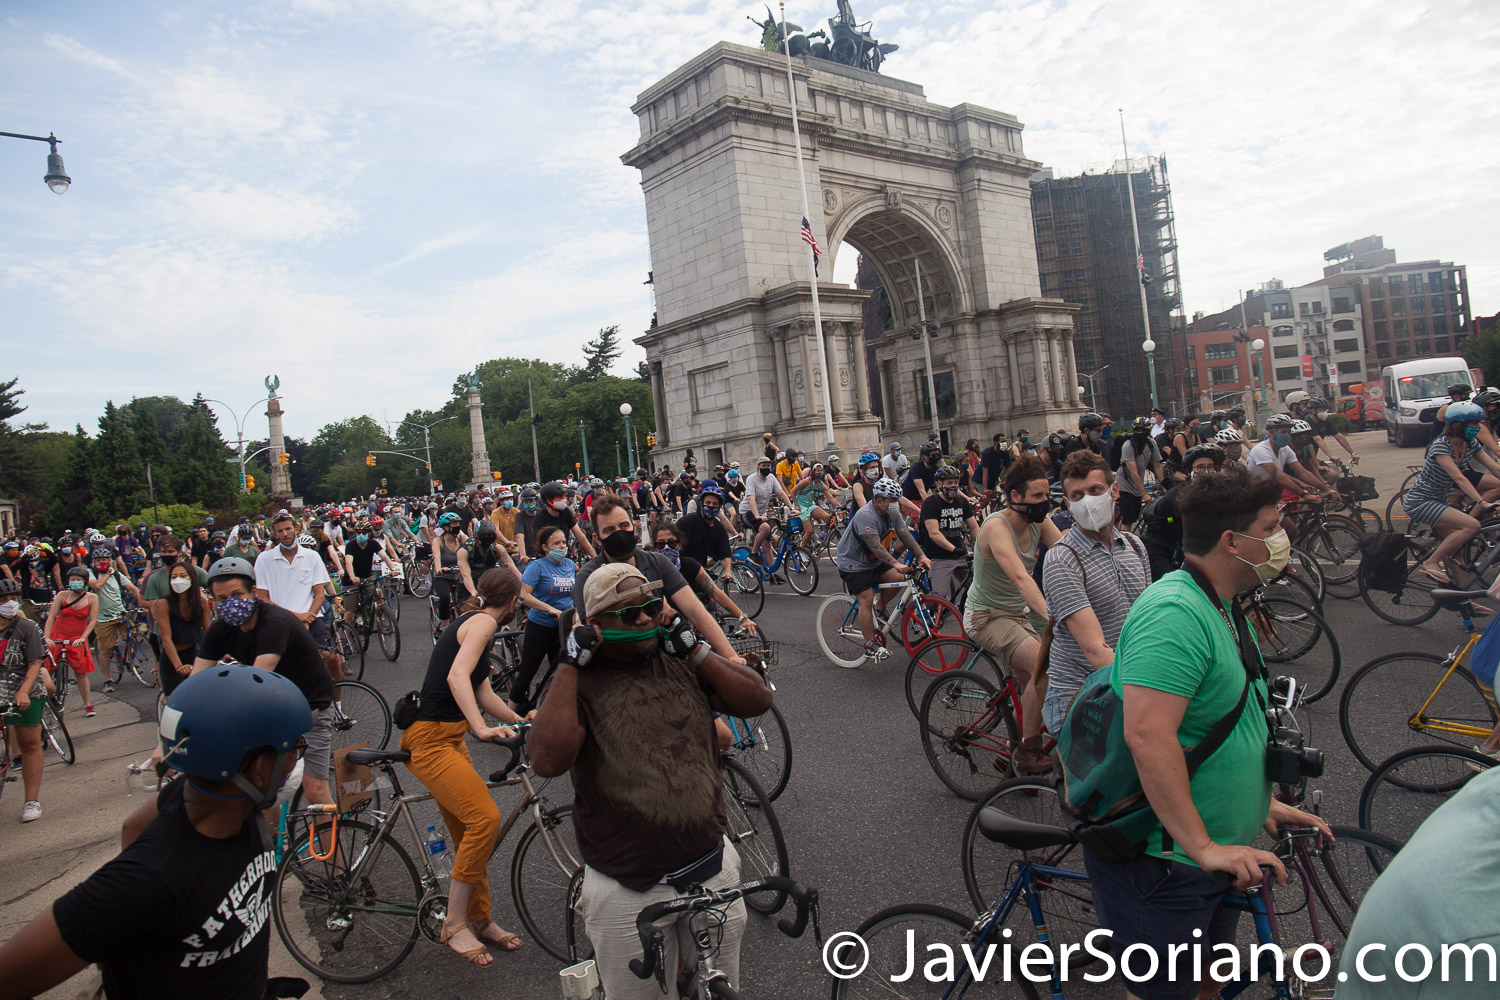 Wednesday, June 10, 2020. Brooklyn, New York City – Today was the second bike ride in solidarity with Black Lives matter. People gathered at Grand Army Plaza and rode their bikes to different places in Brooklyn. Photo by Javier Soriano/www.JavierSoriano.com